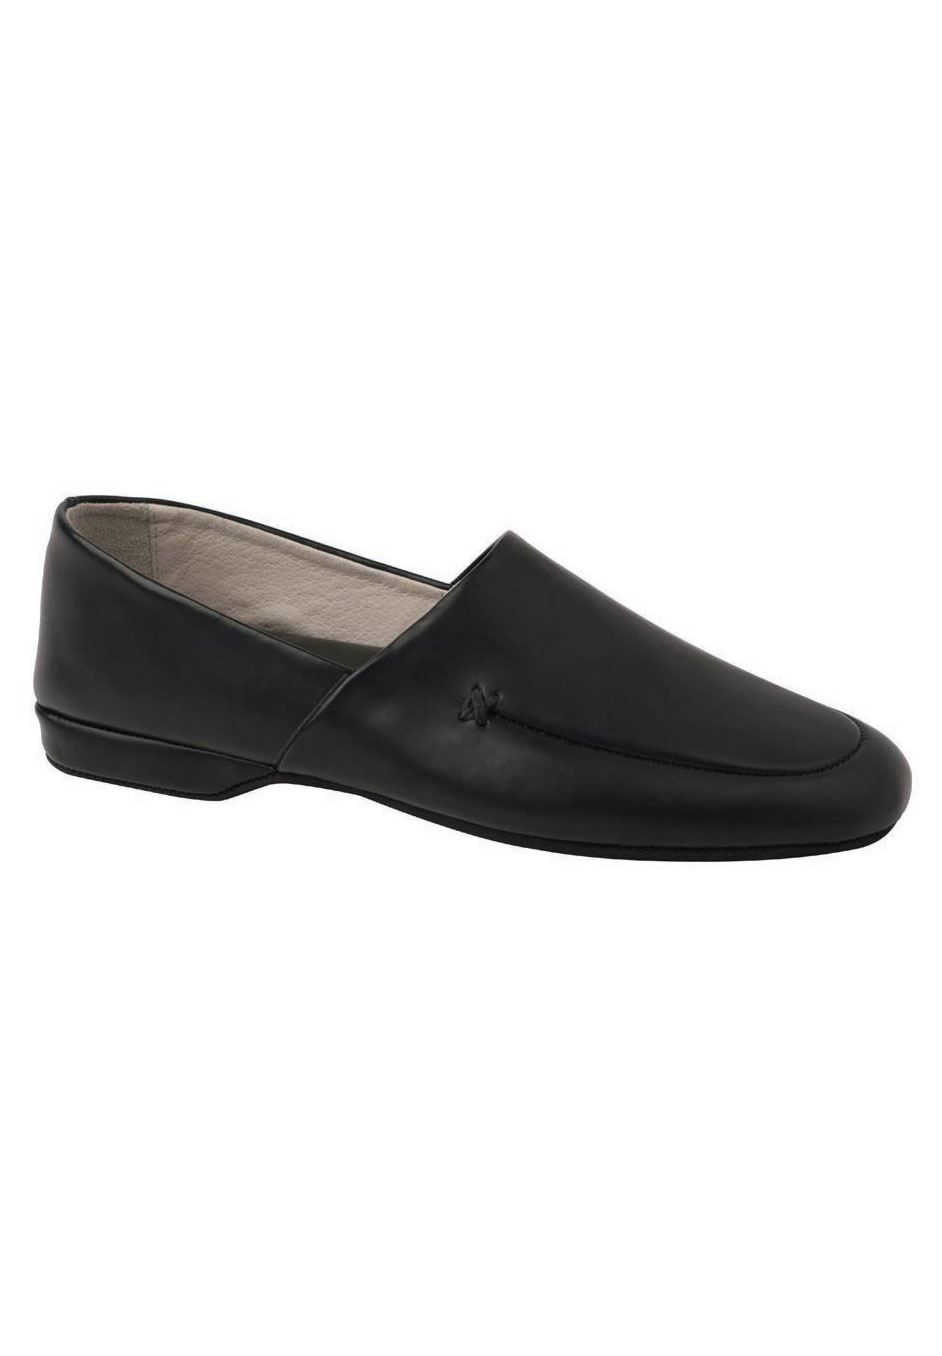 L.B. Evans Duke Opera Leather Slippers,